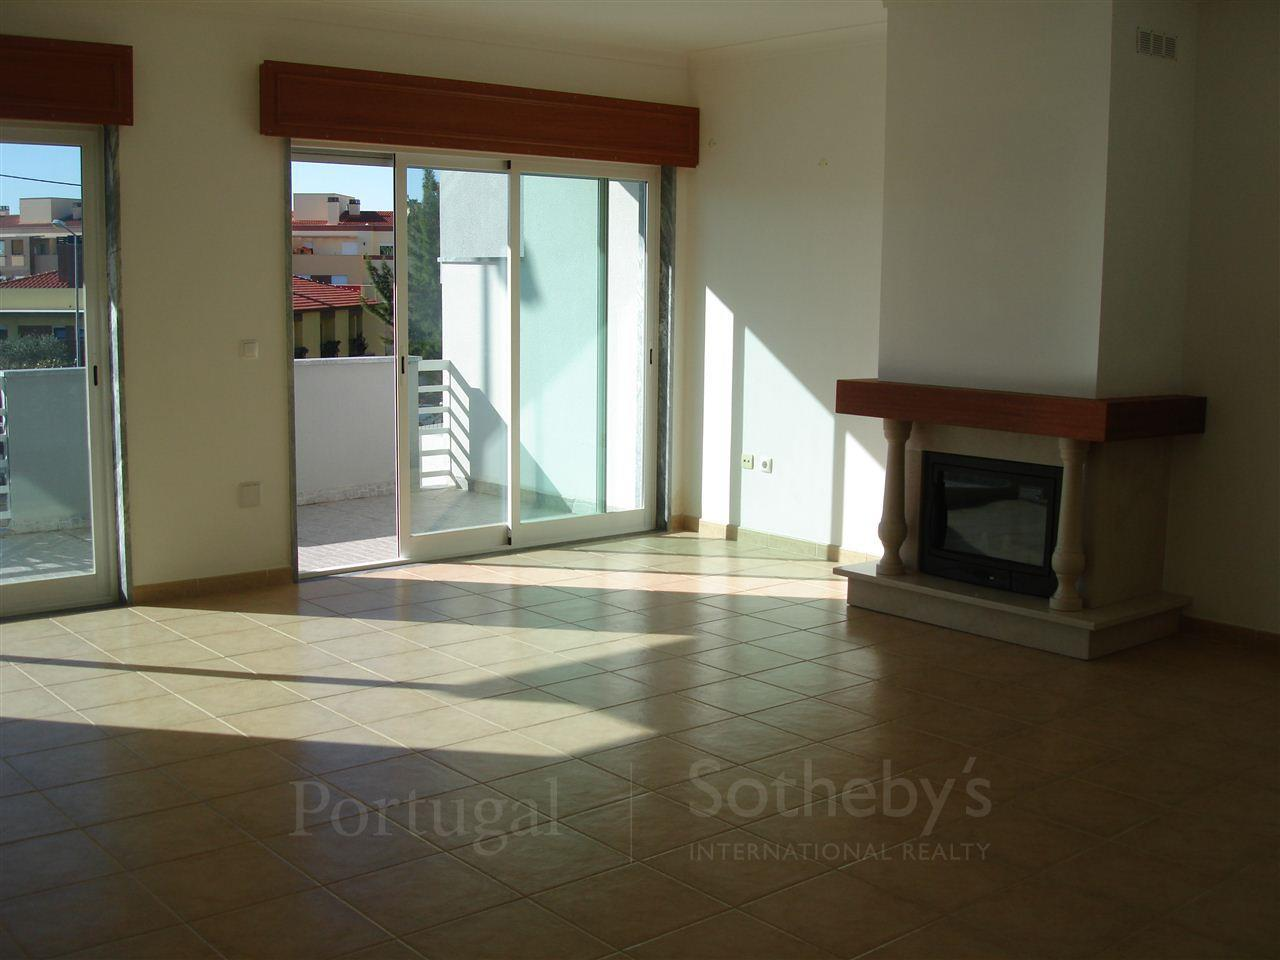 独户住宅 为 销售 在 House, 3 bedrooms, for Sale Cascais, 葡京 葡萄牙